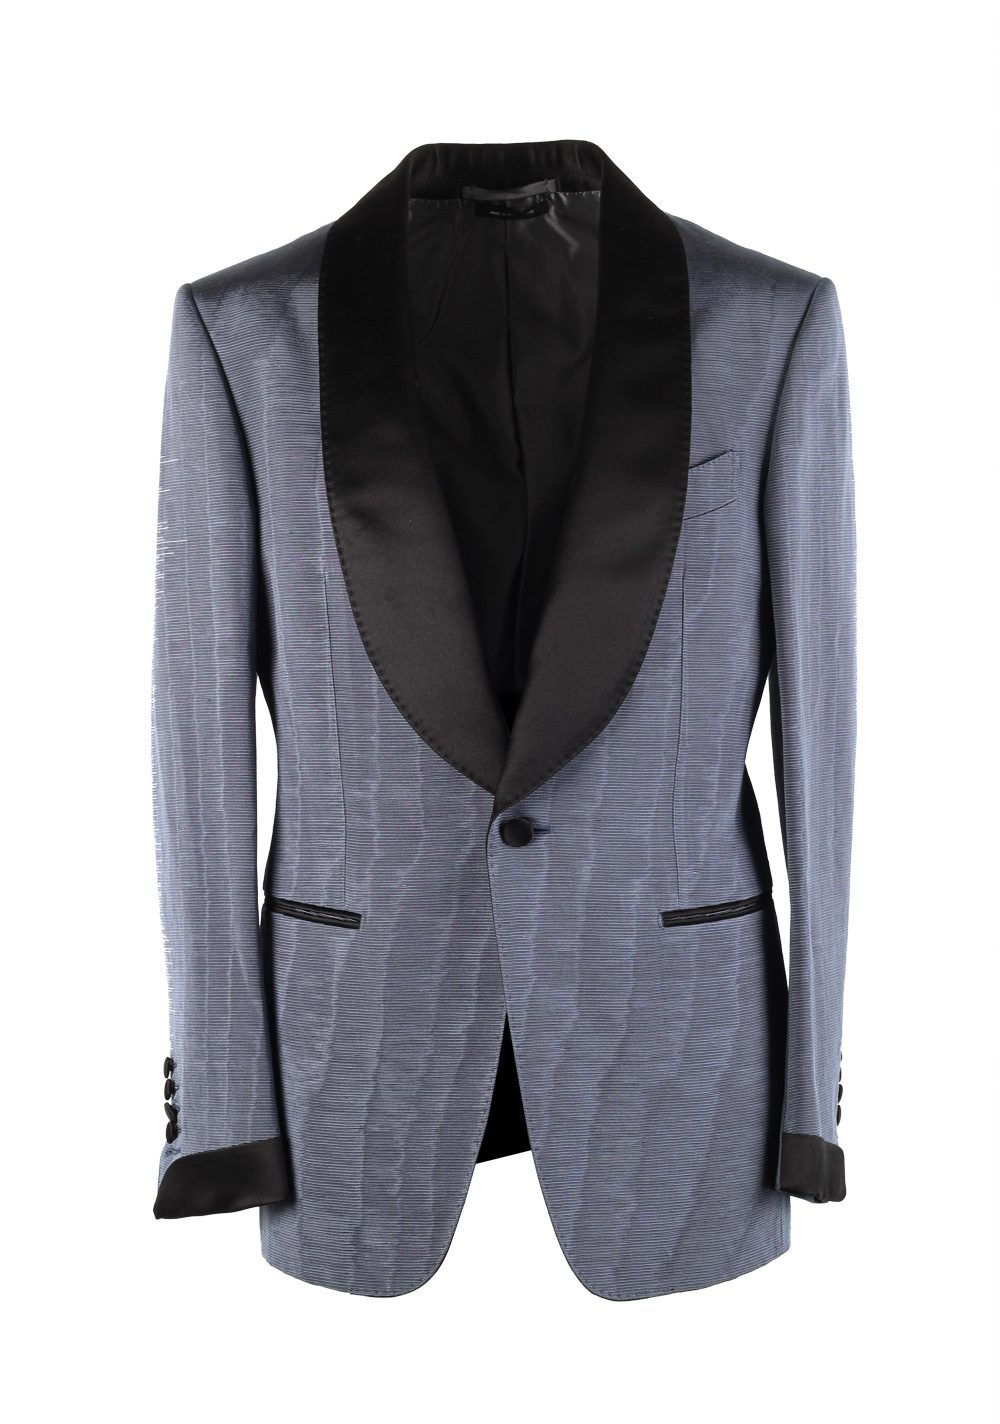 TOM FORD Shelton Blue Tuxedo Dinner Jacket Size 46 / 36R U.S. | Costume Limité